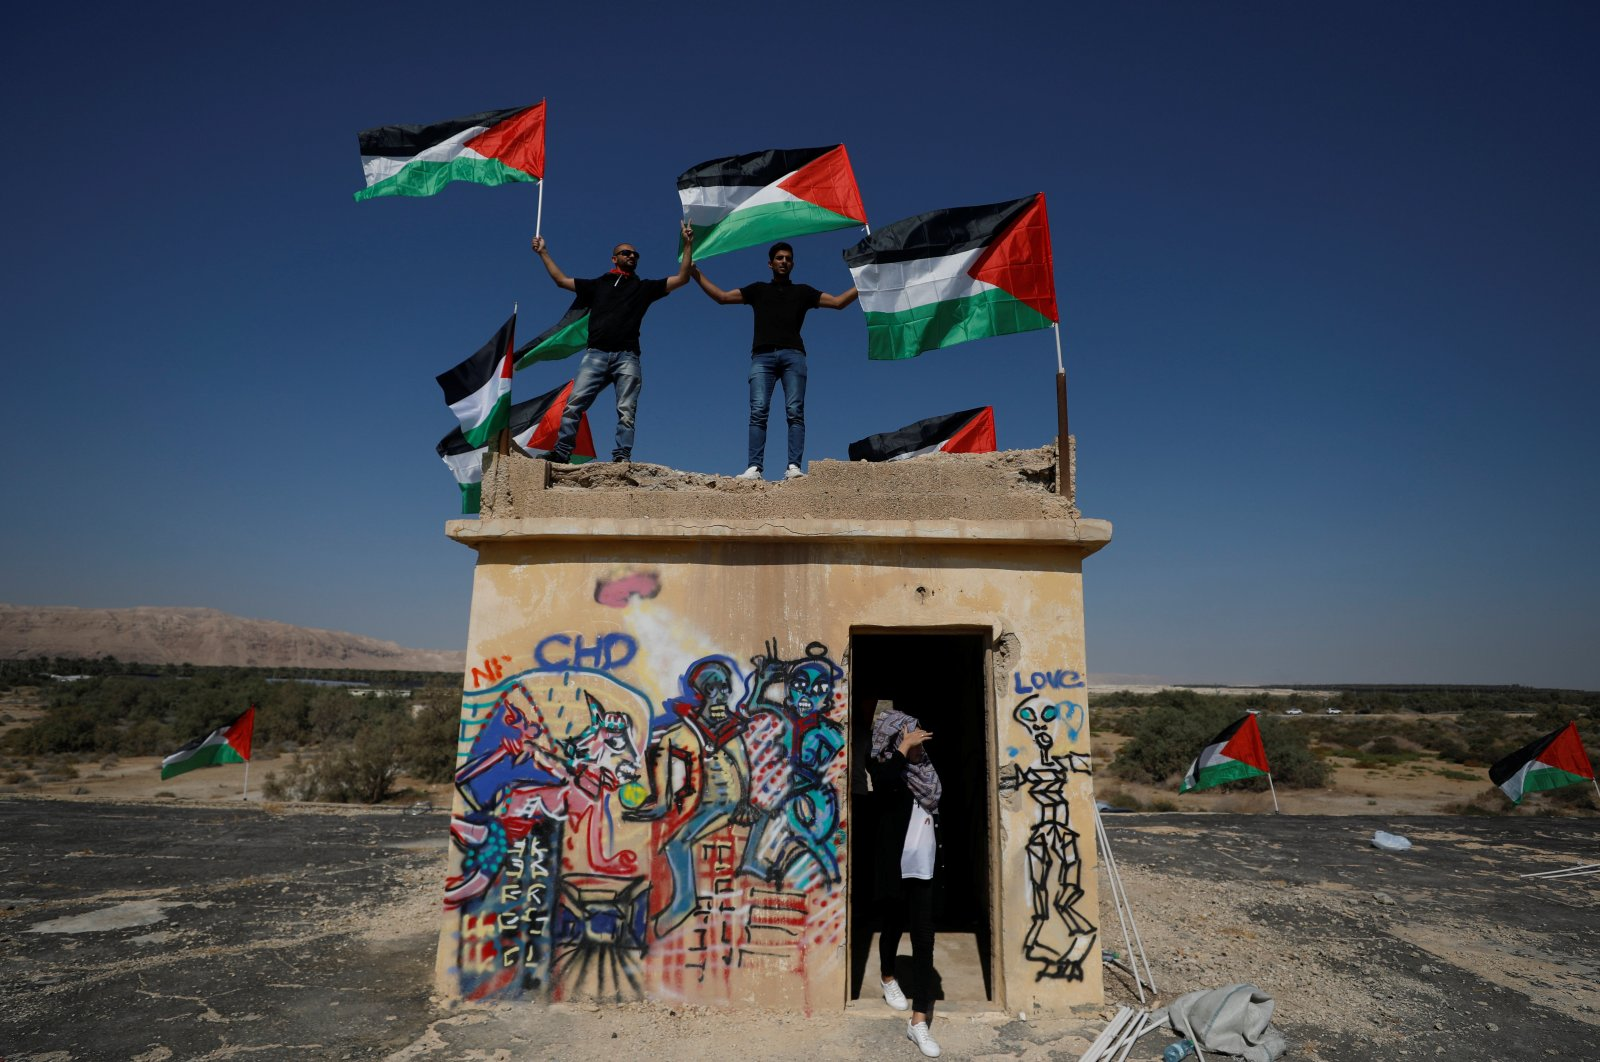 Demonstrators hold Palestinian flags during a protest against Jewish settlements near the Dead Sea in the Israeli-occupied West Bank, Sept. 28, 2019. (Reuters Photo)